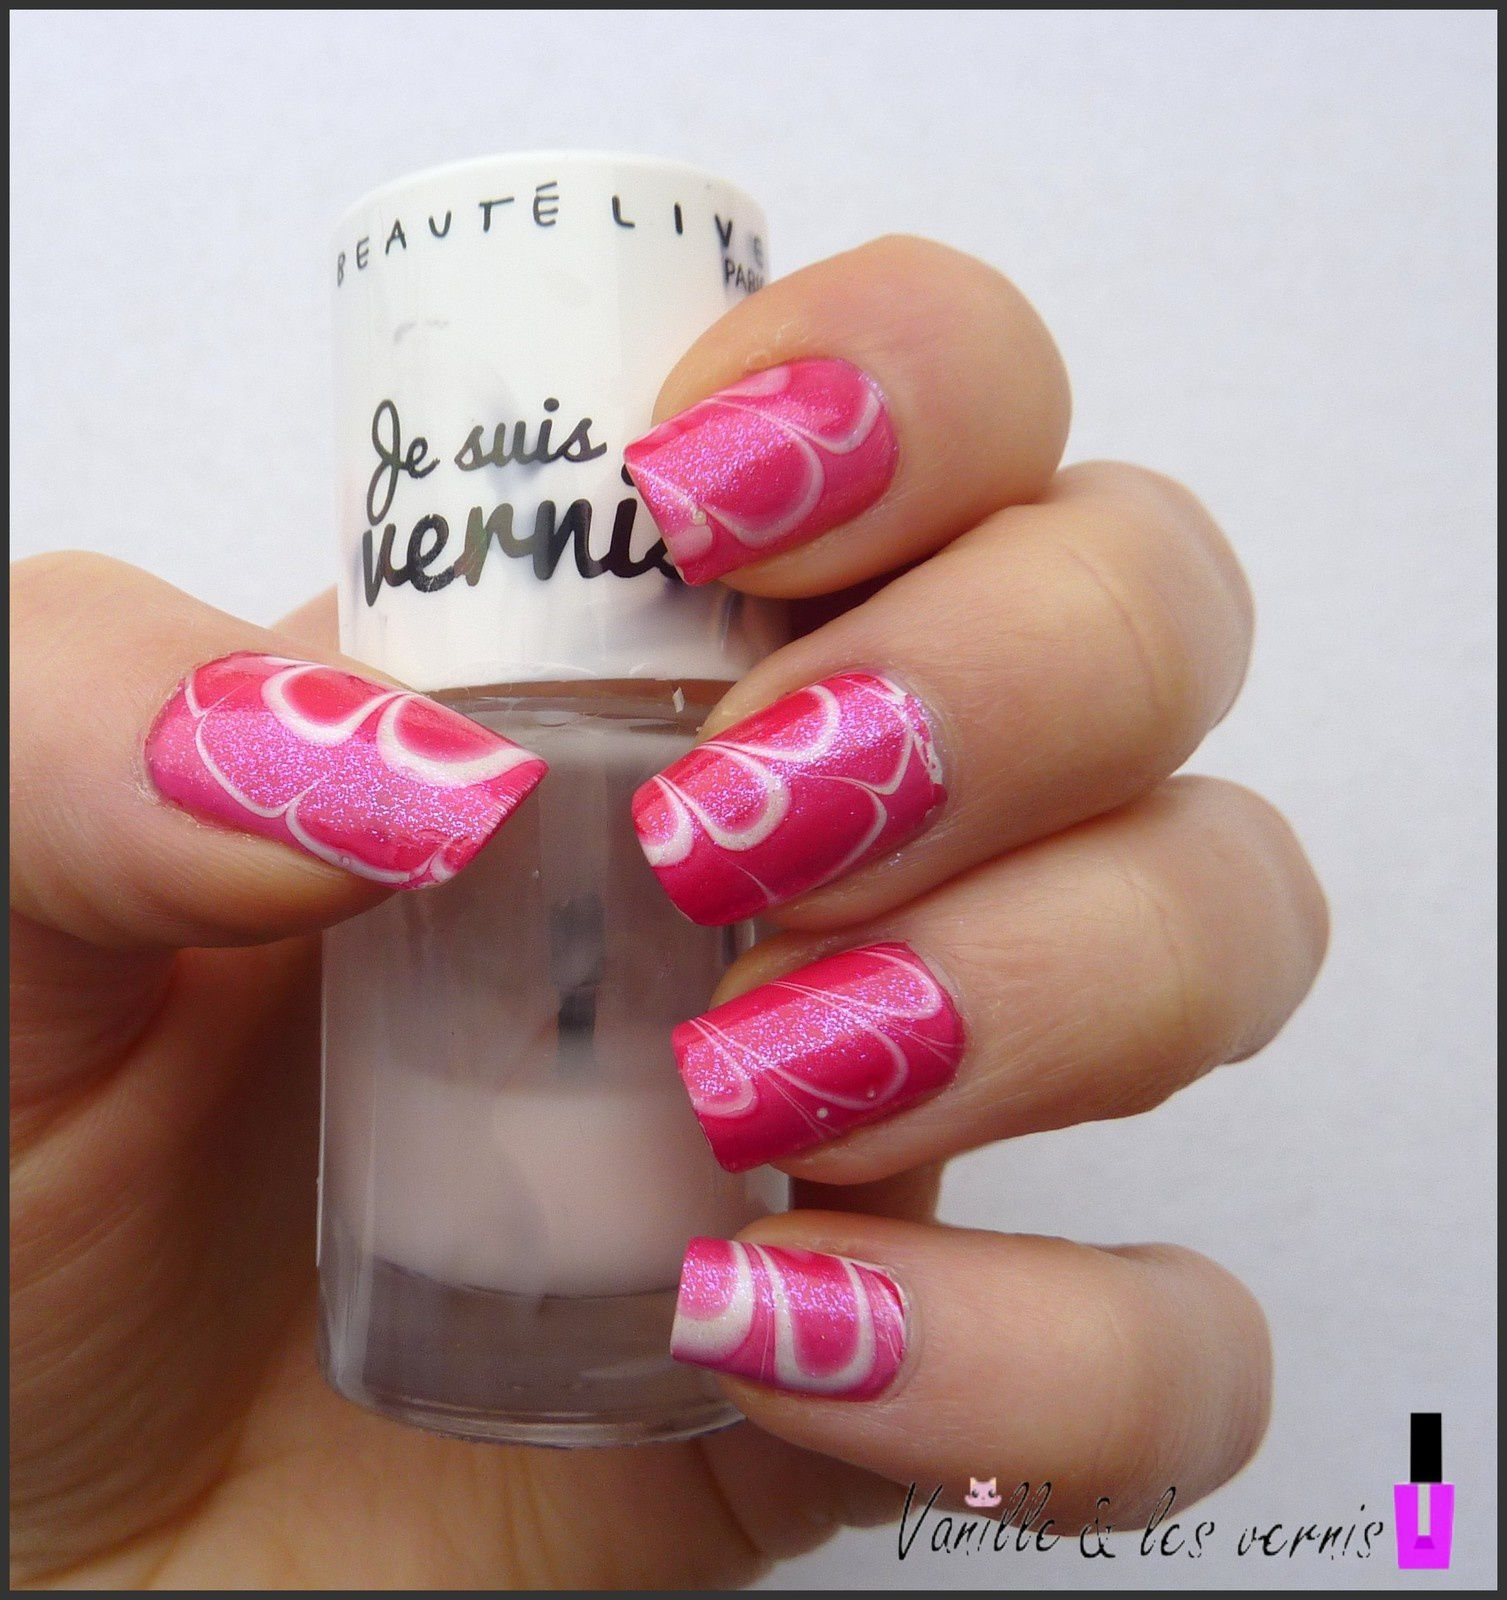 water marble tout en rose pour la st valentin vanille et les vernis. Black Bedroom Furniture Sets. Home Design Ideas